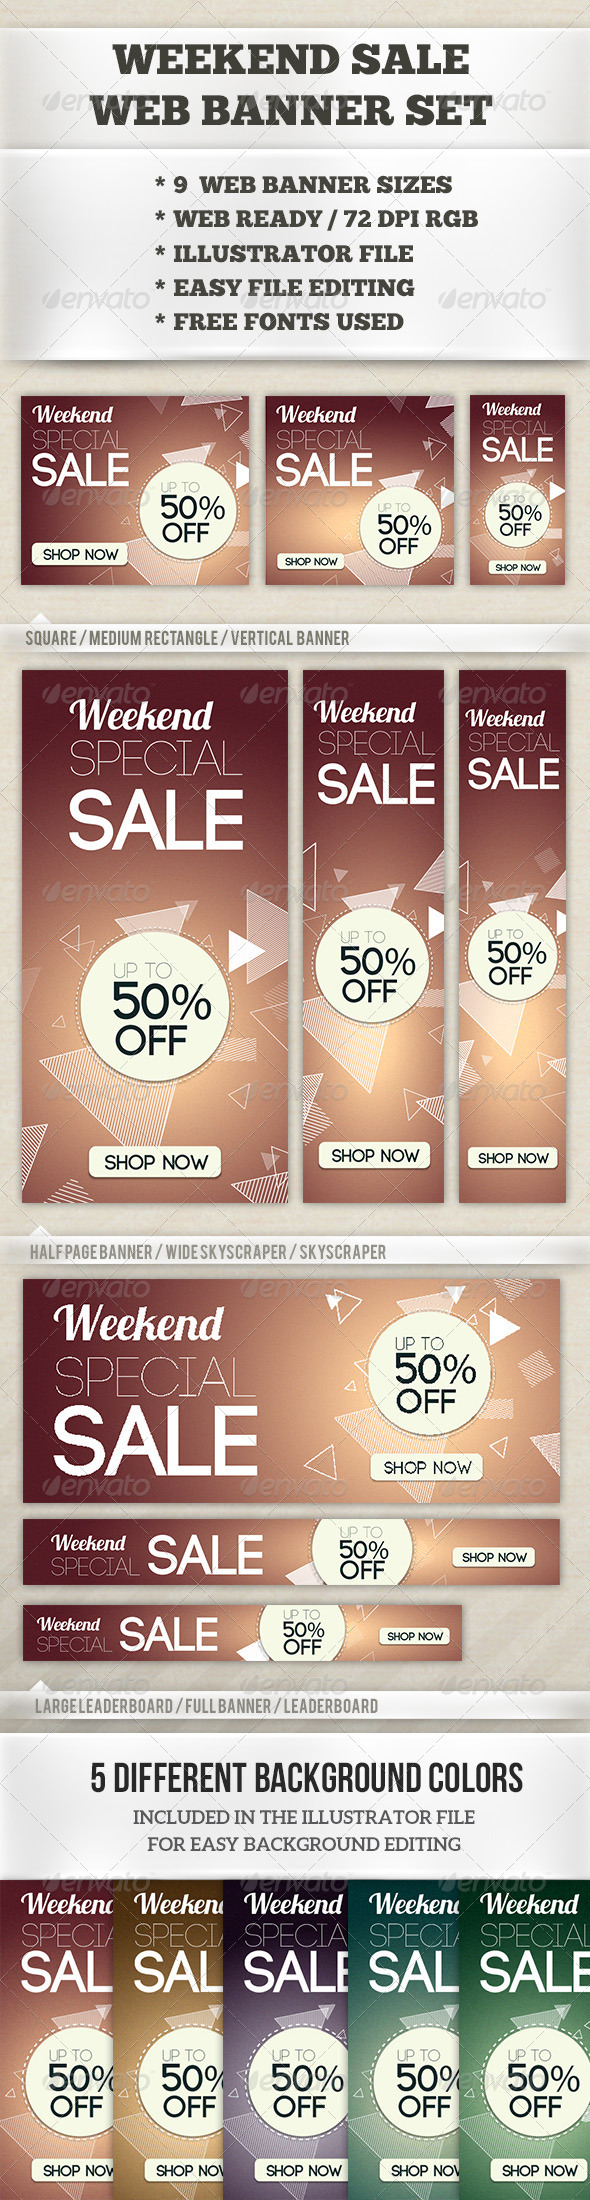 Weekend Sale Web Banner Set - Banners & Ads Web Elements